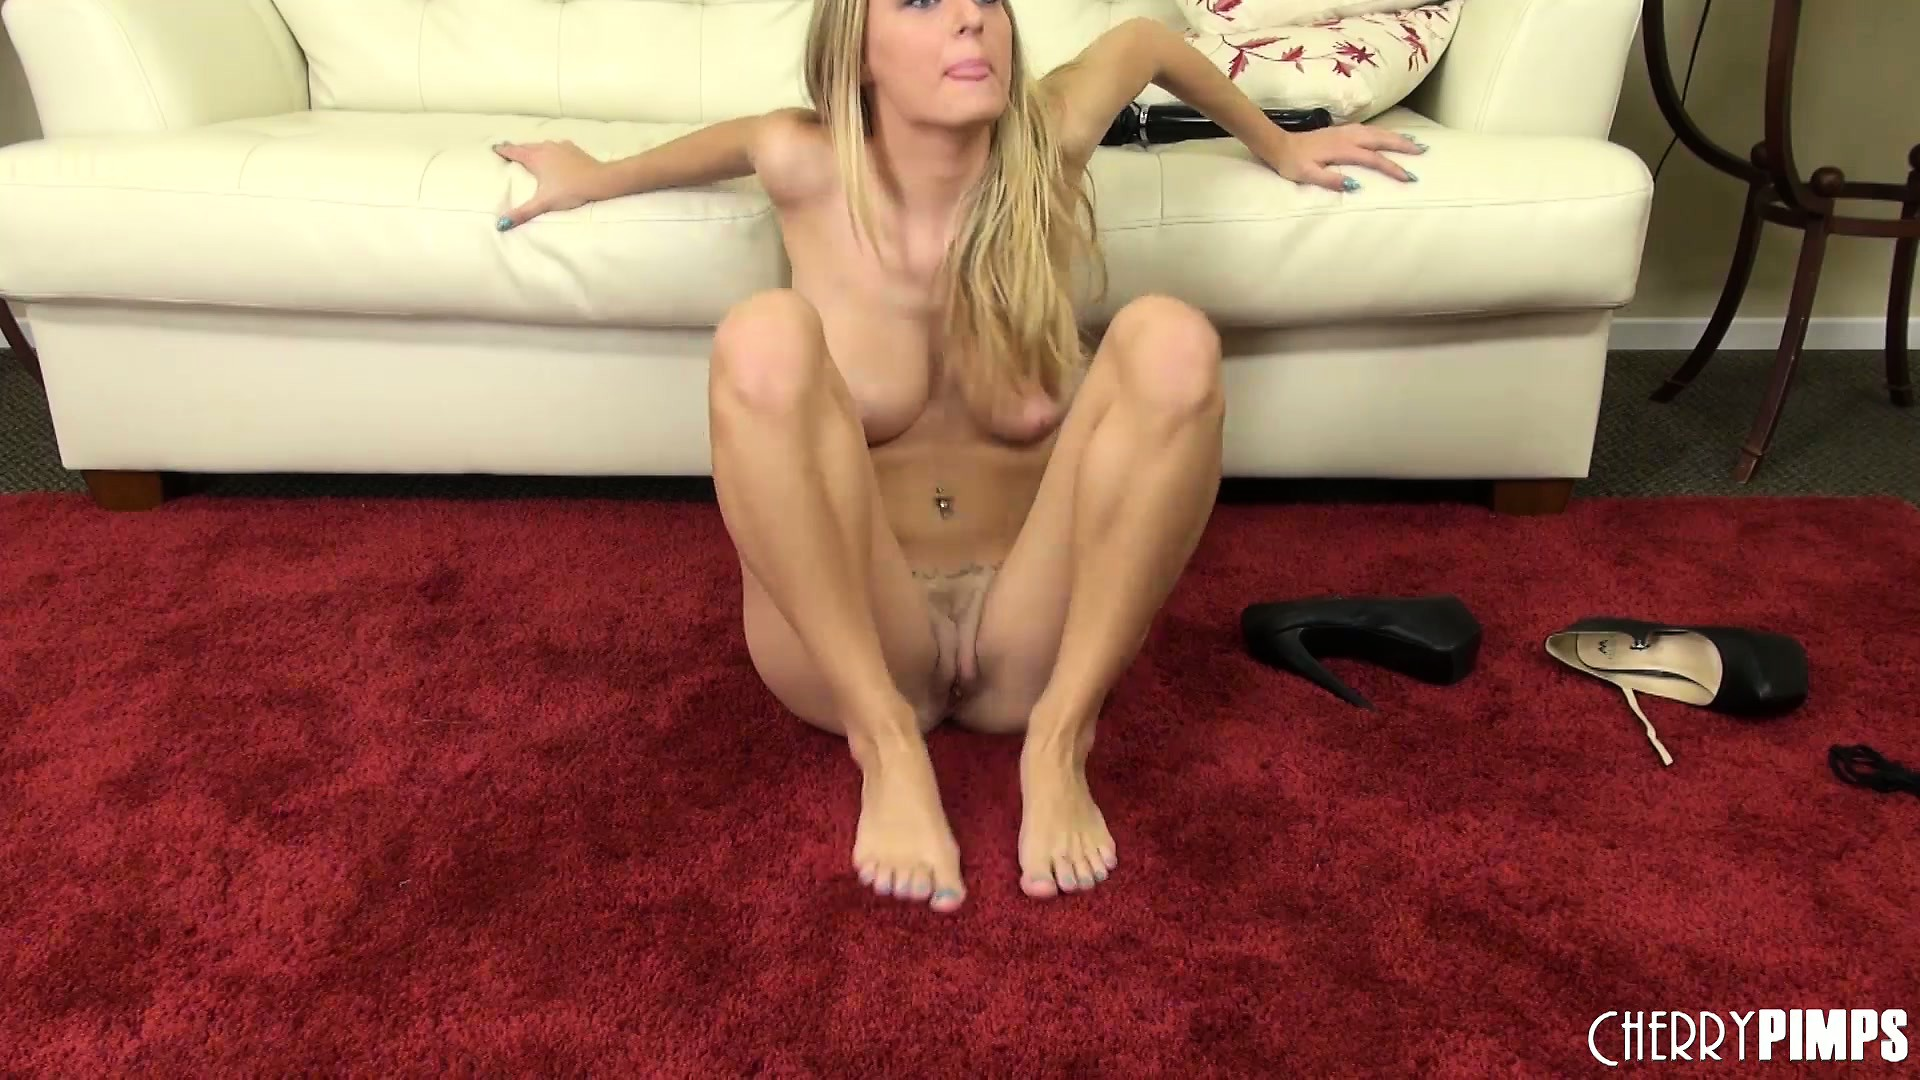 Porno Video of Natalia Spreads Her Sexy Body Across The Room Playing With Her Juicy Peach